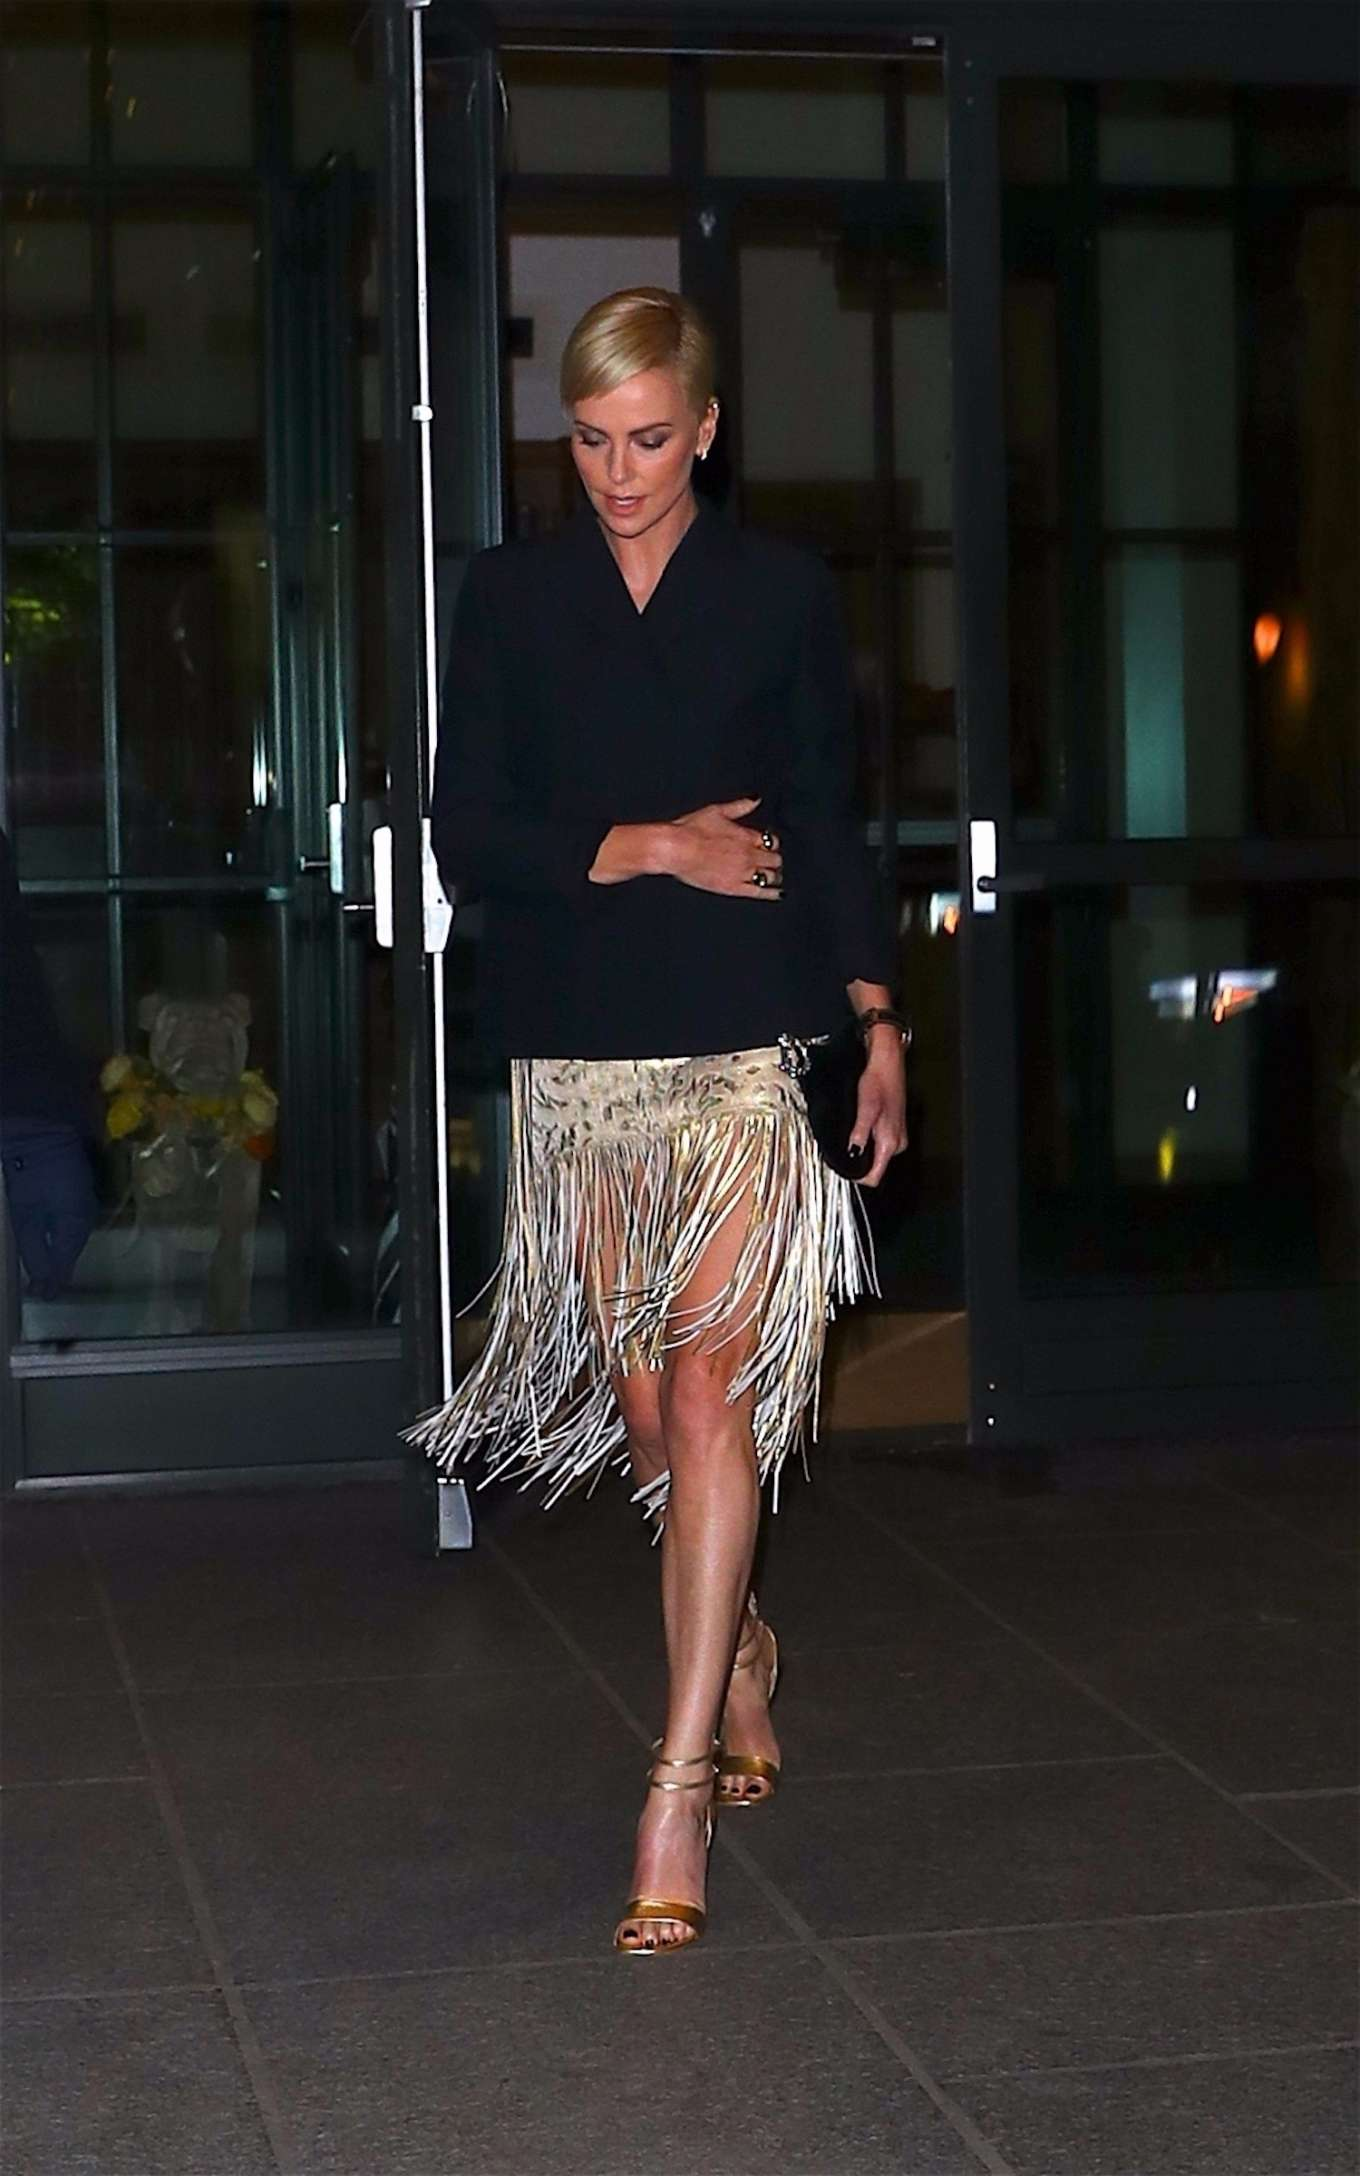 Charlize Theron 2019 : Charlize Theron – Heads to an event in New York City-06